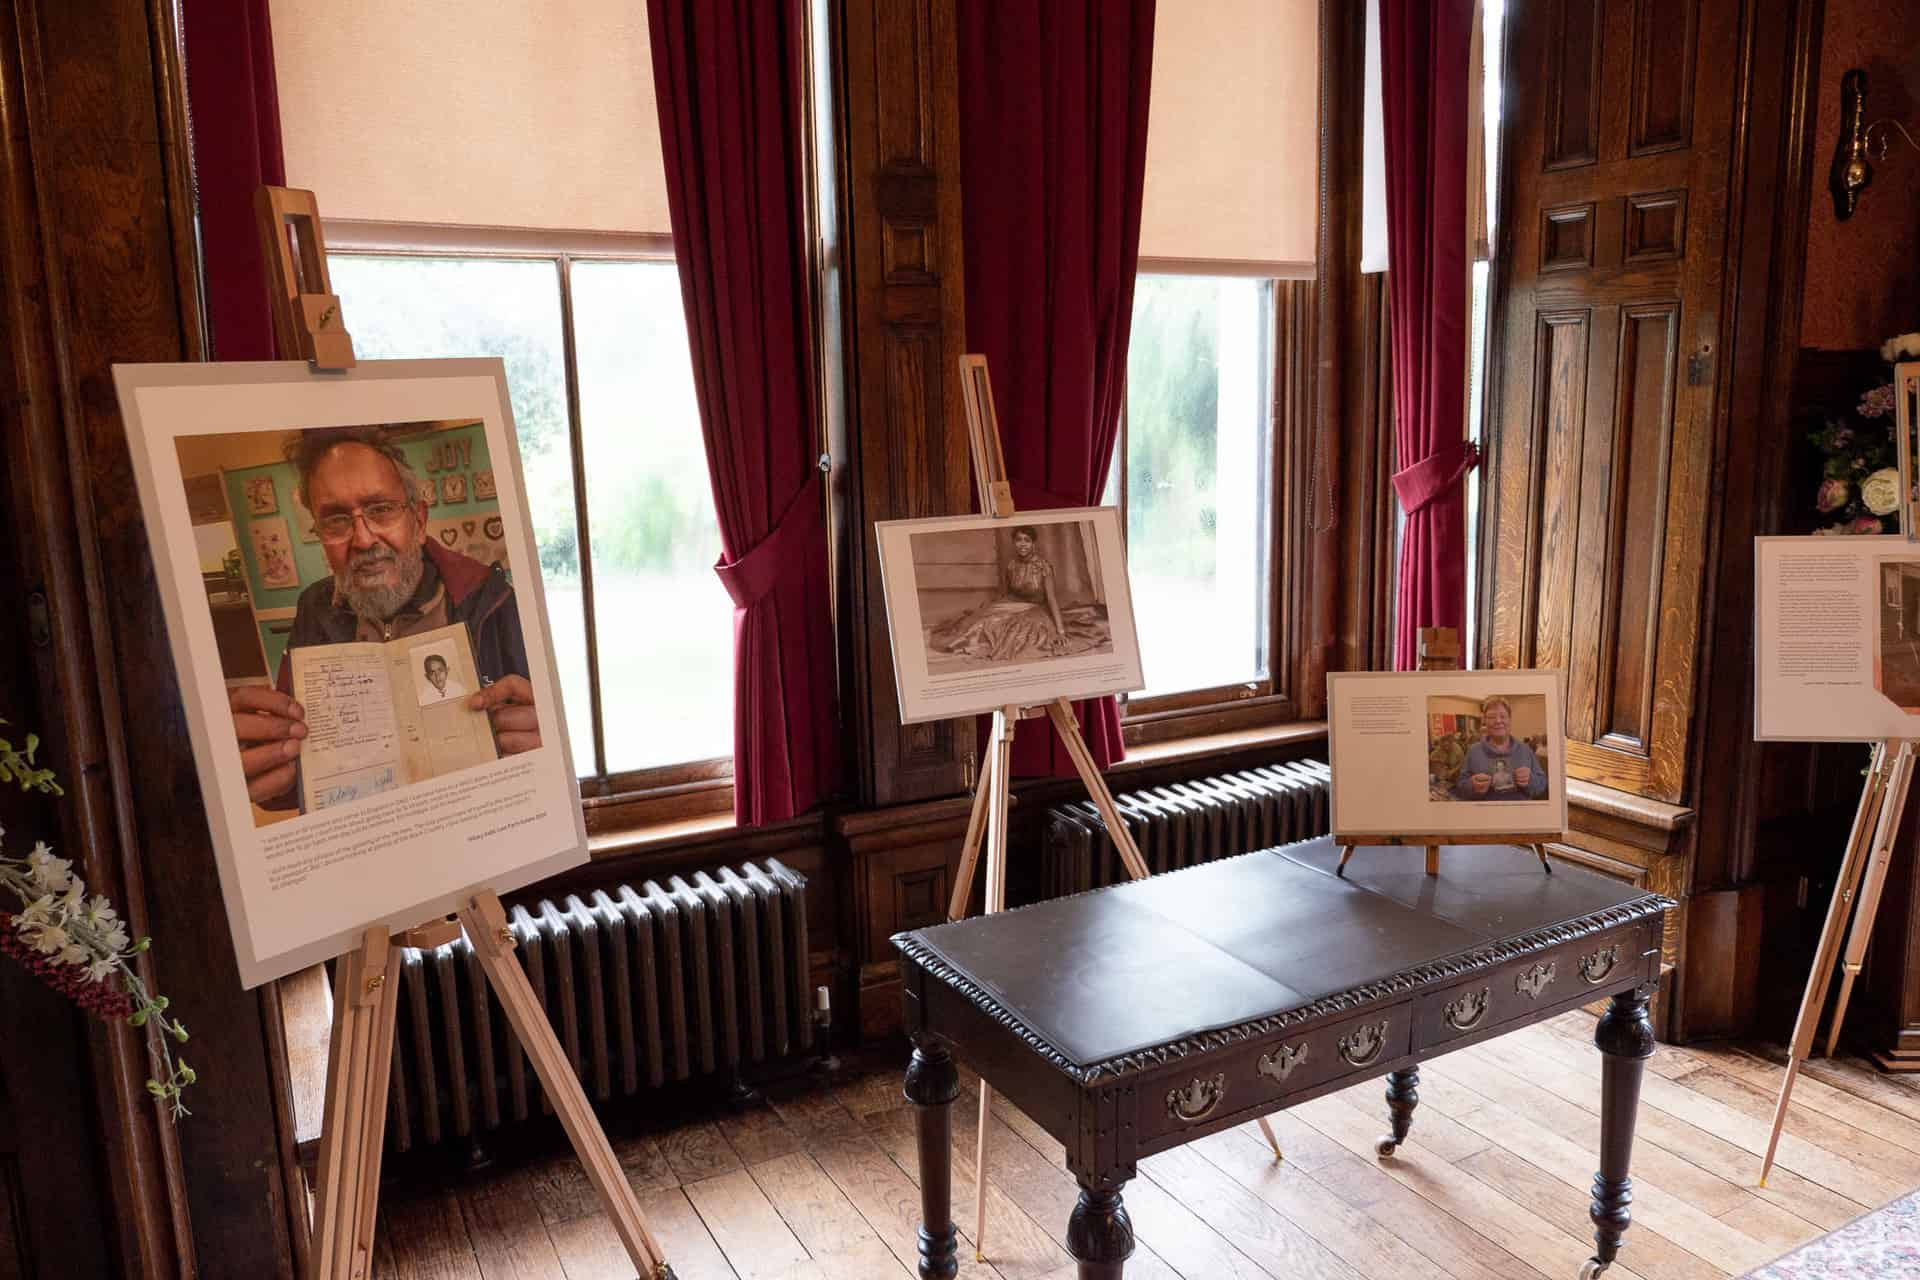 A selection of 30 participants photographs and stories were presented on easels throughout the House Museum